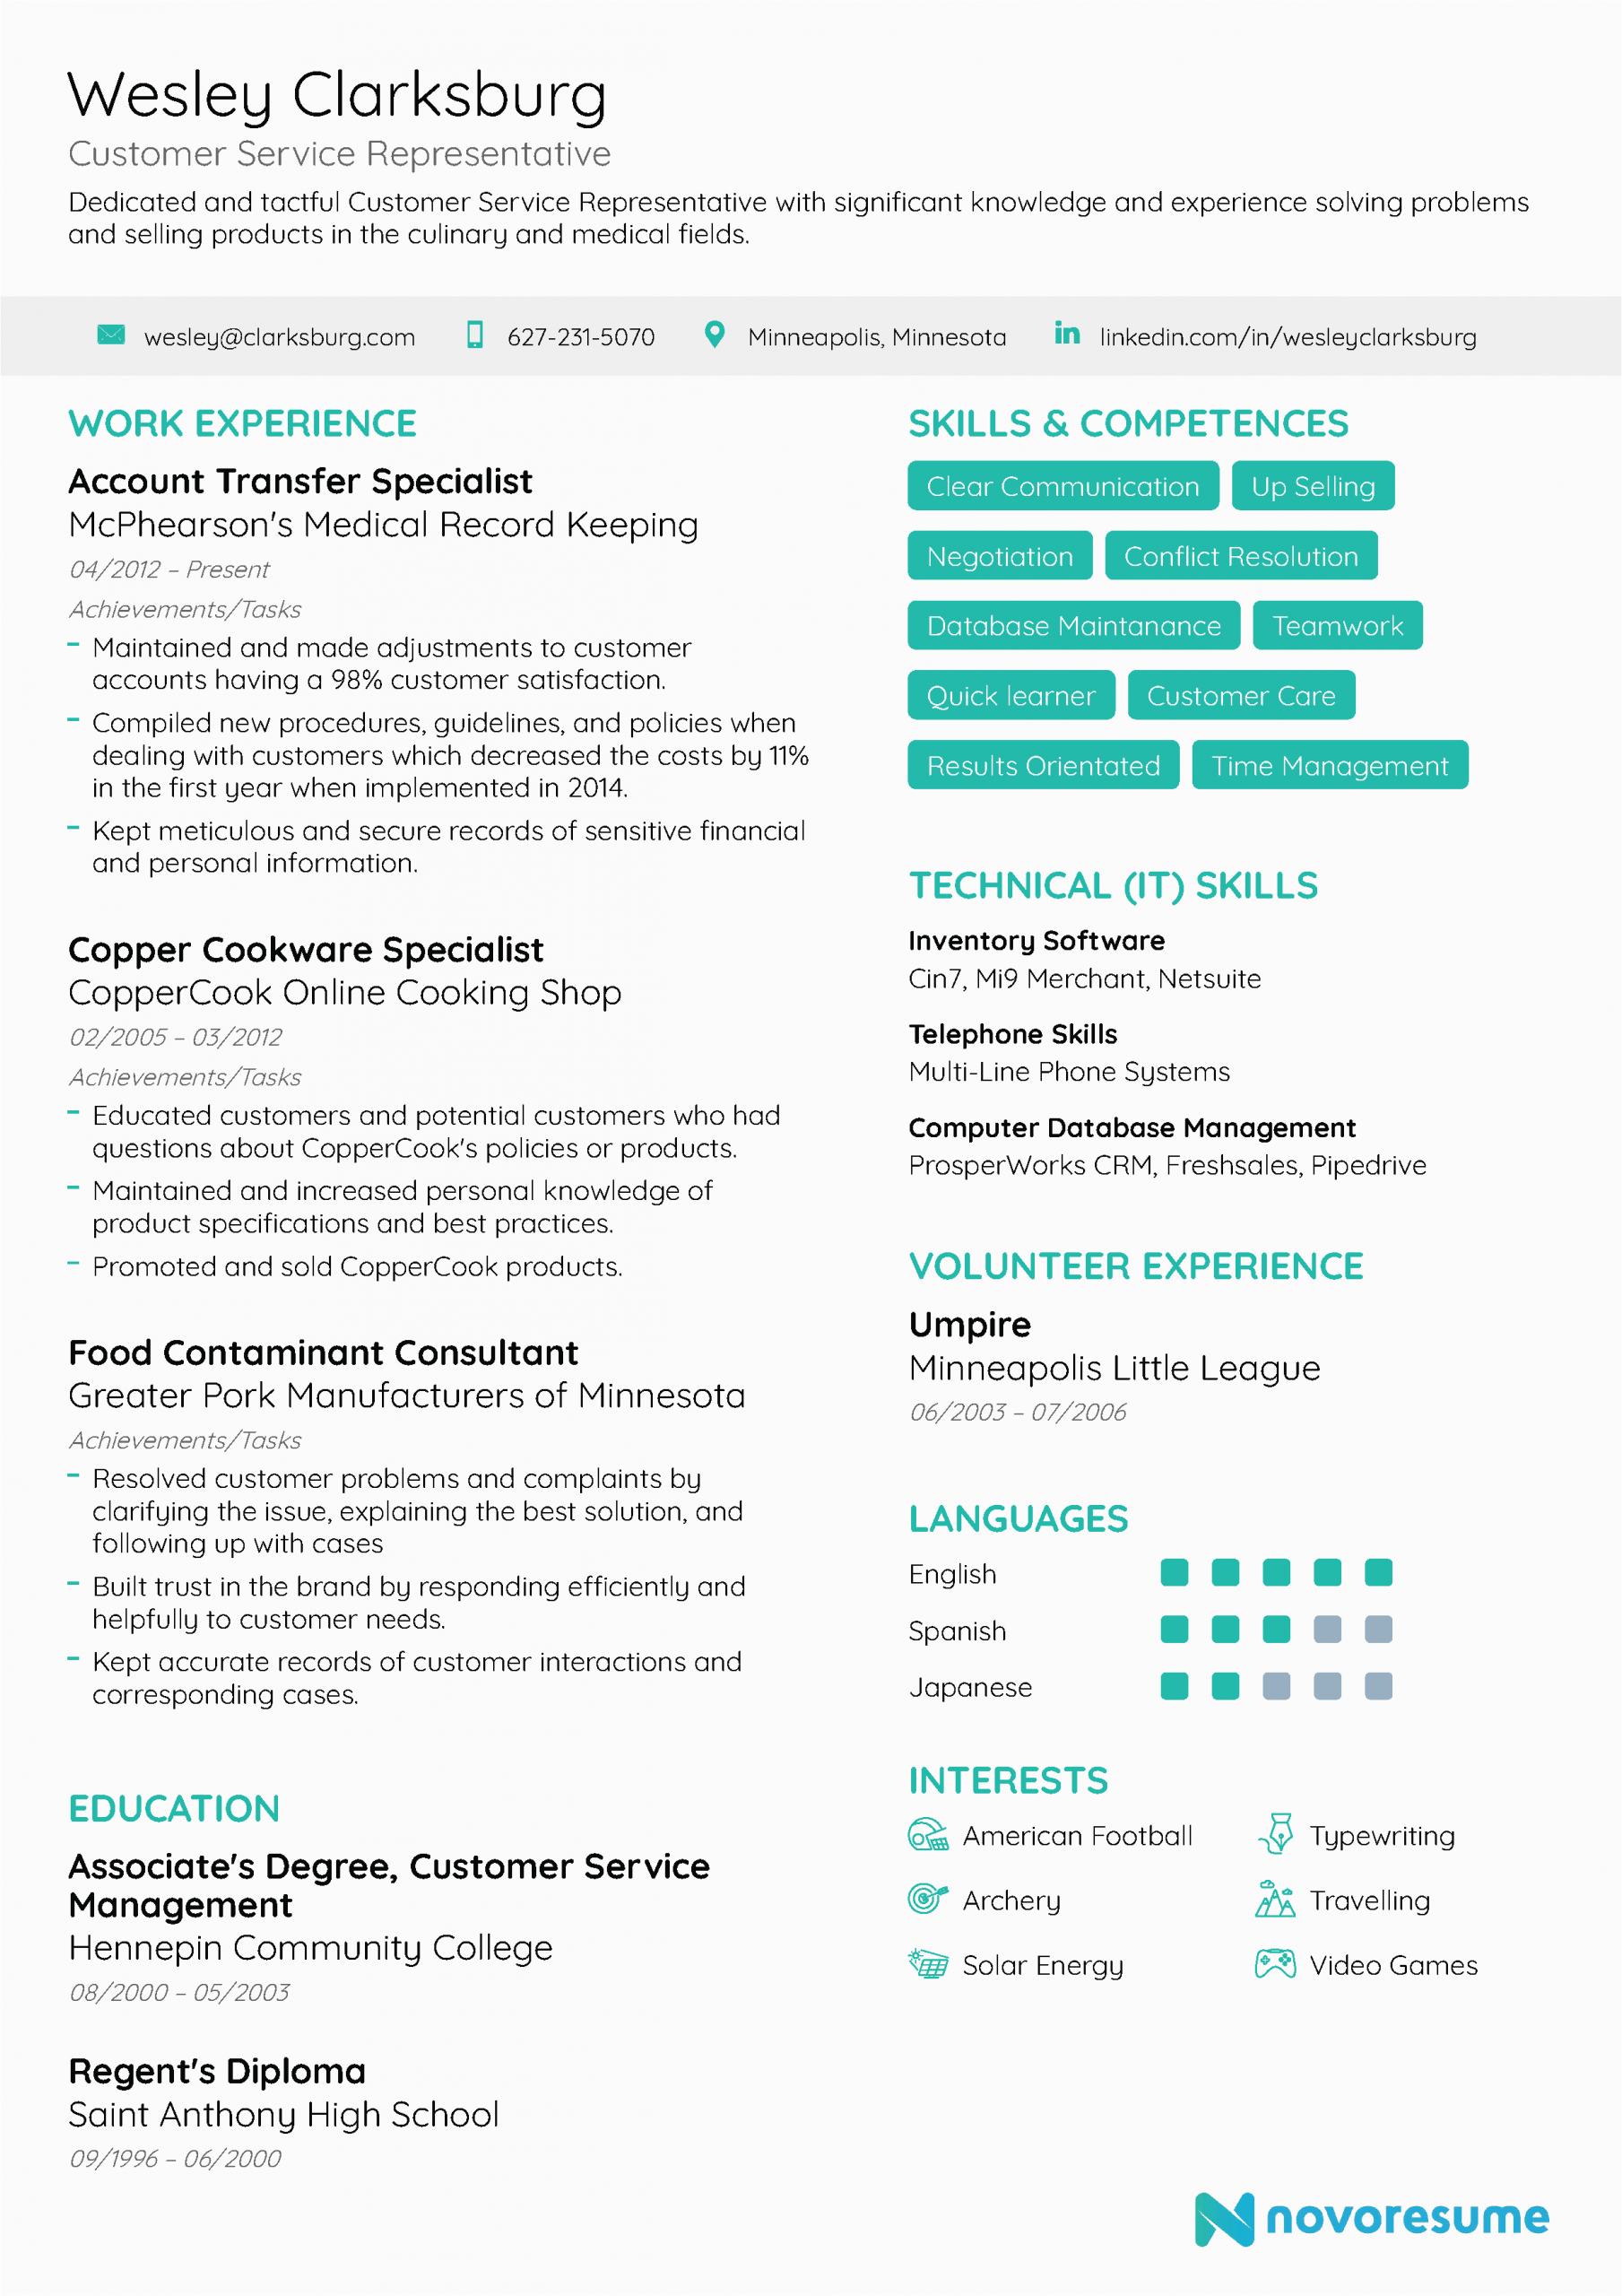 Professional Summary Resume Sample for Customer Service Customer Service Resume [2021] Examples & Guide